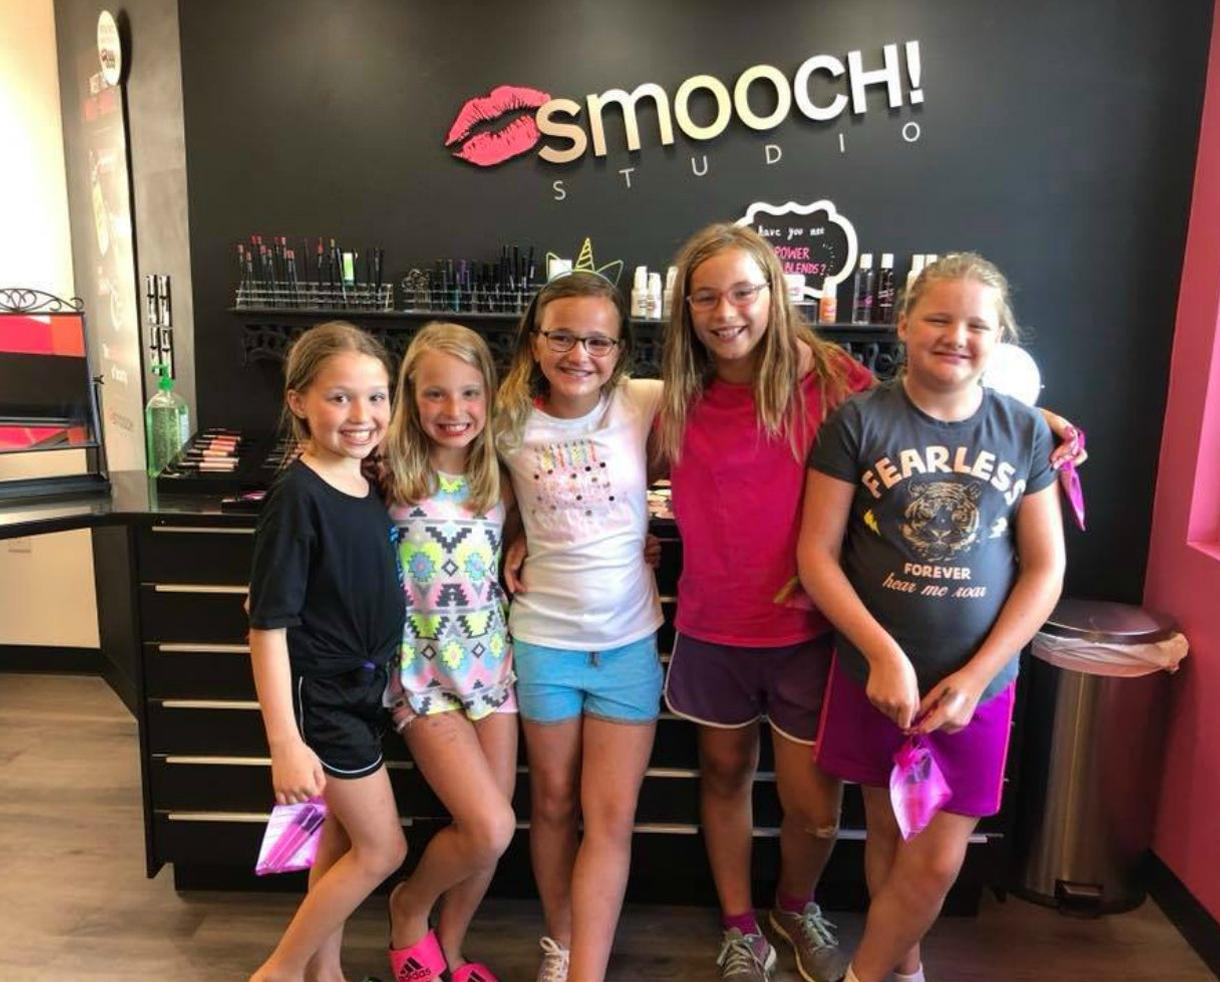 smooch! studio Lip Gloss & Mini Makeover Birthday Party for Ages 10 and Under